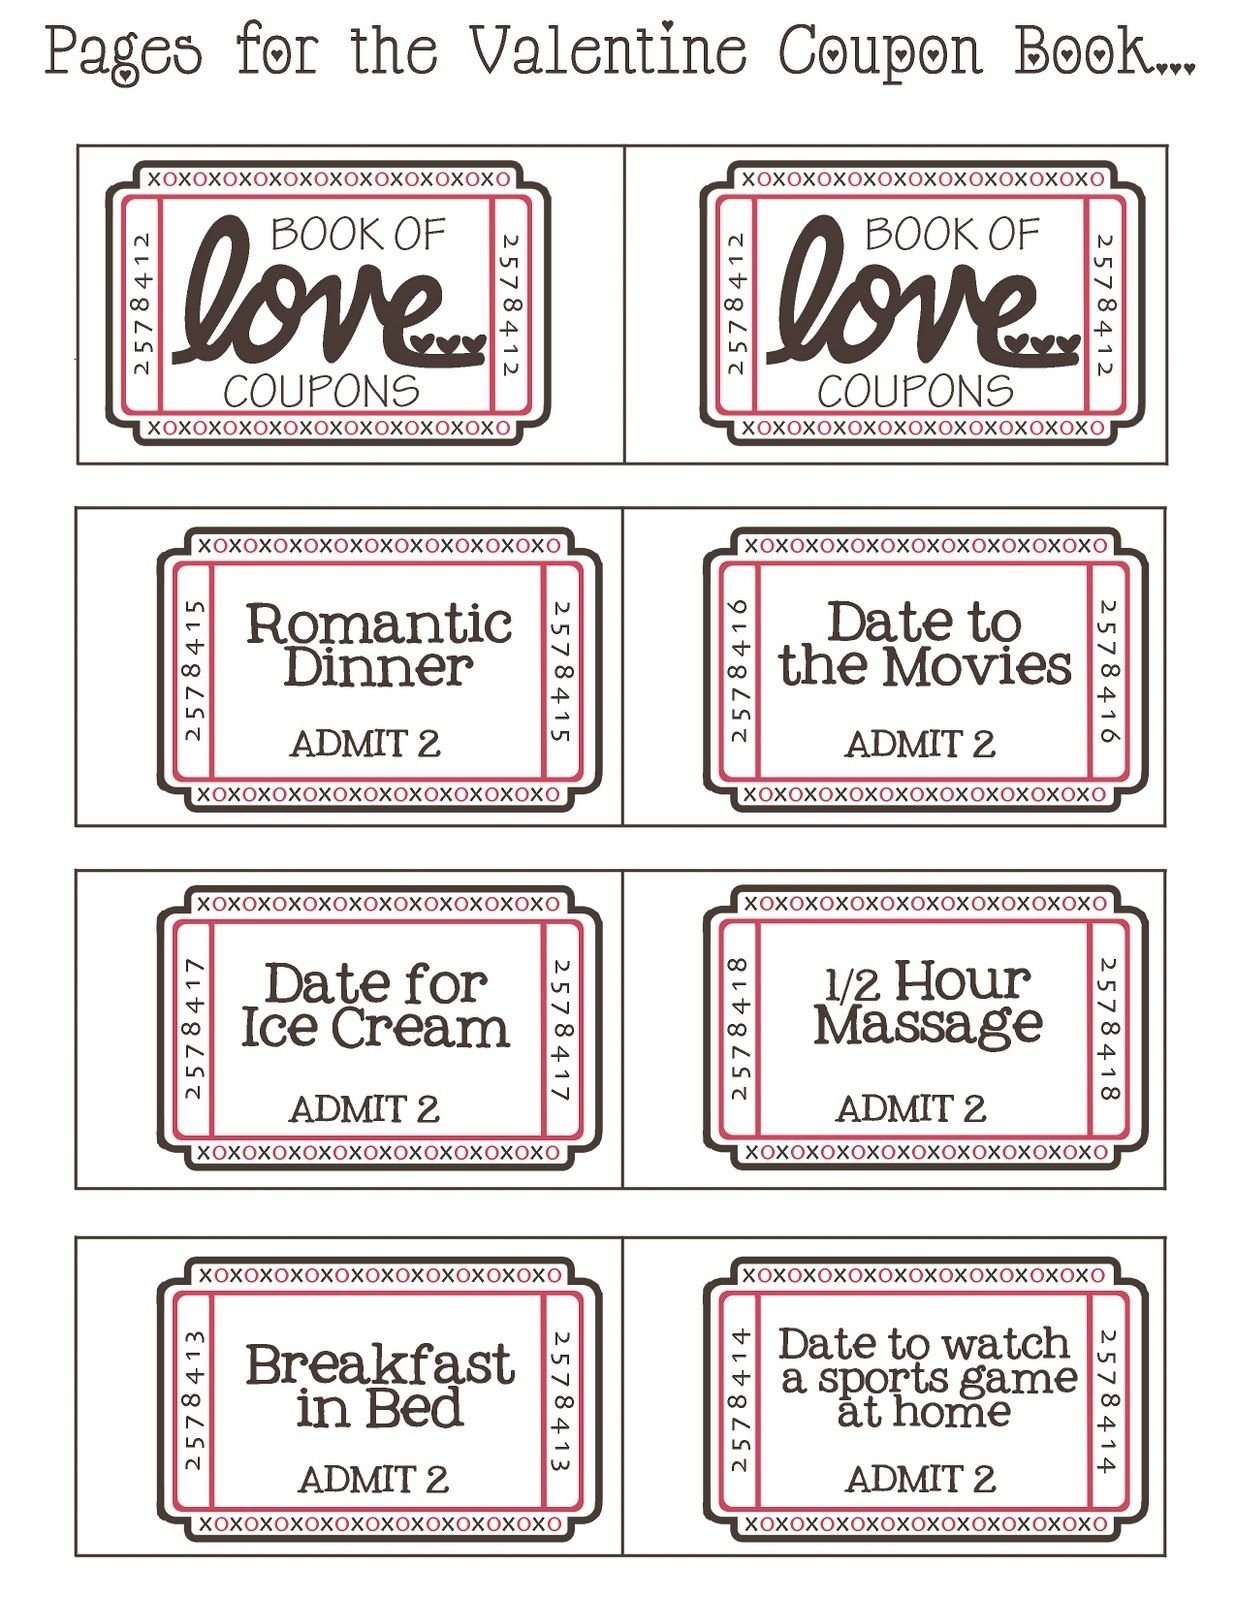 10 Attractive Valentine Coupon Book Ideas For Guys